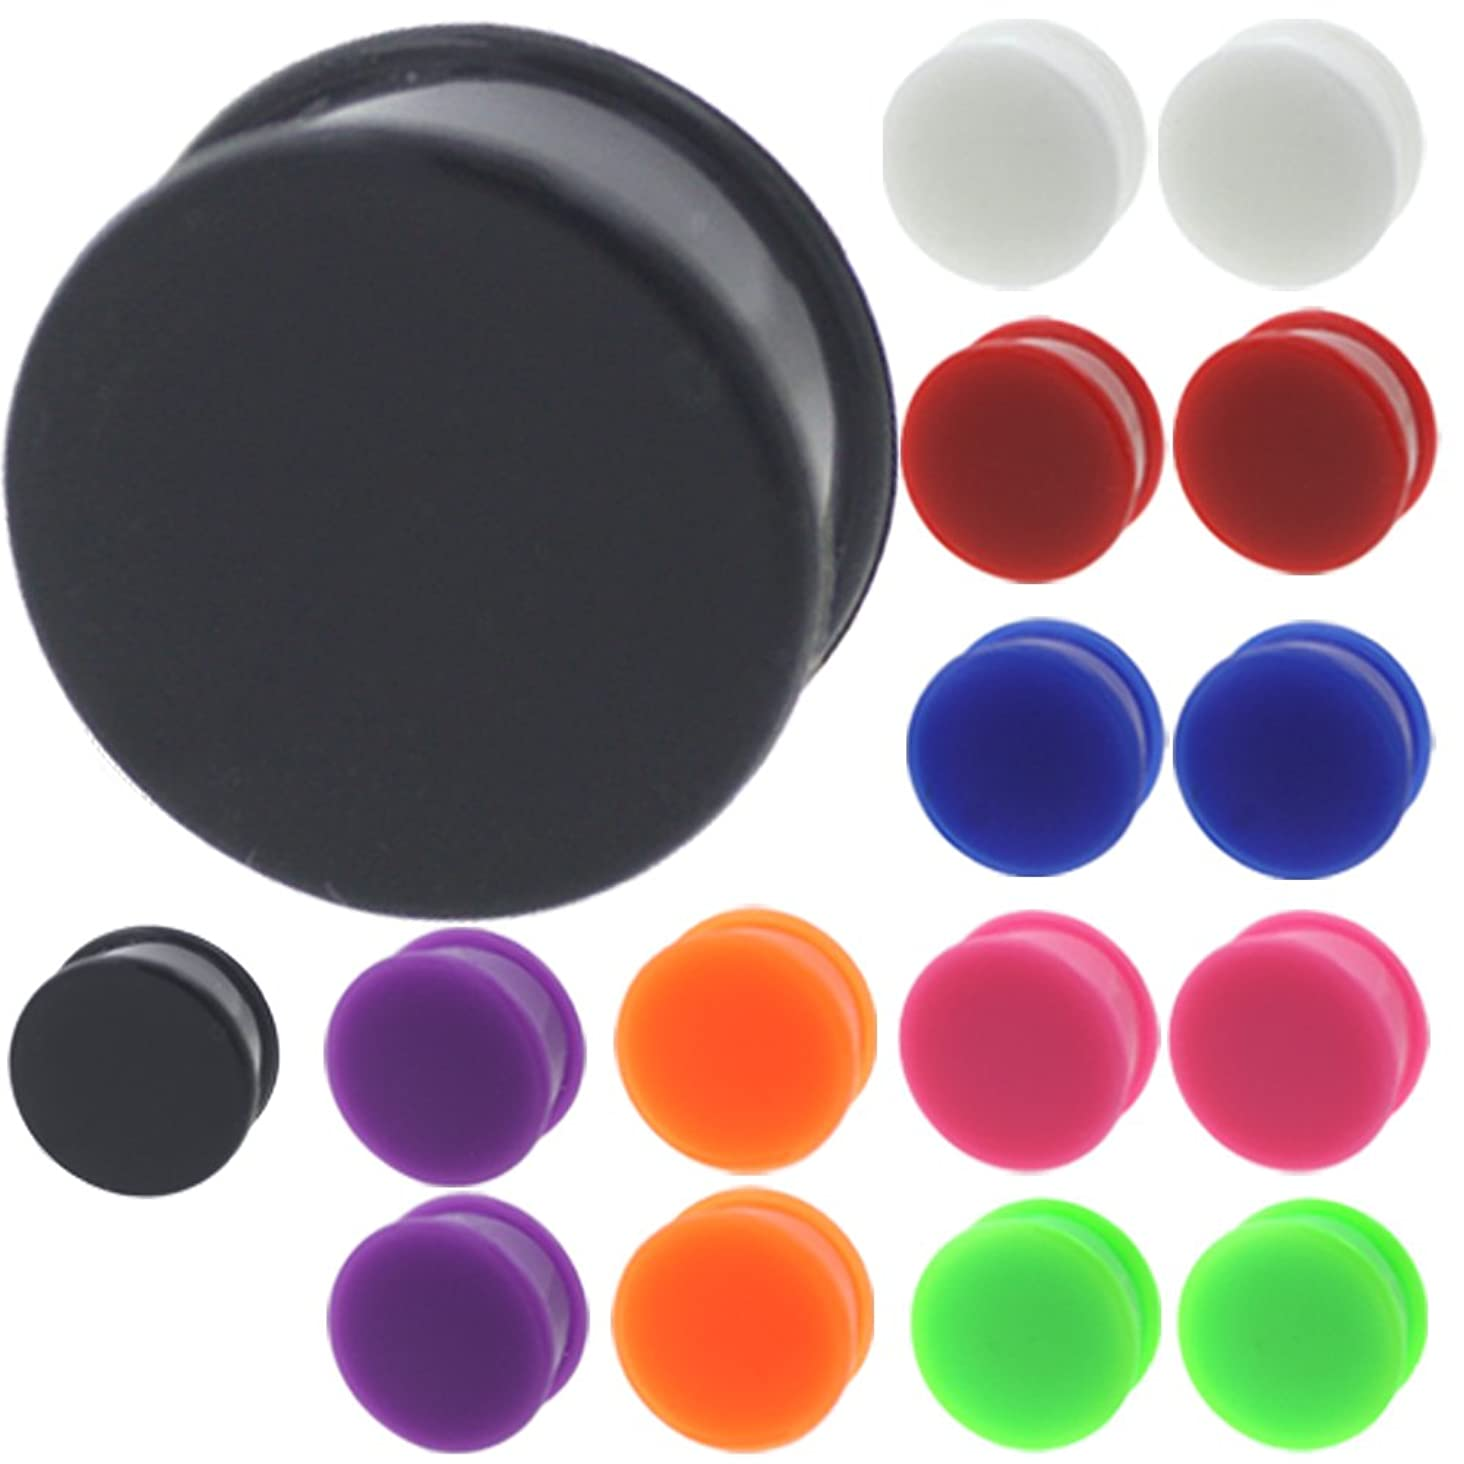 MoDTanOiz 16 Pieces of 3mm to 30mm Silicone Plugs Tunnels gauges Ear Plug Stretcher Black White Green Pink